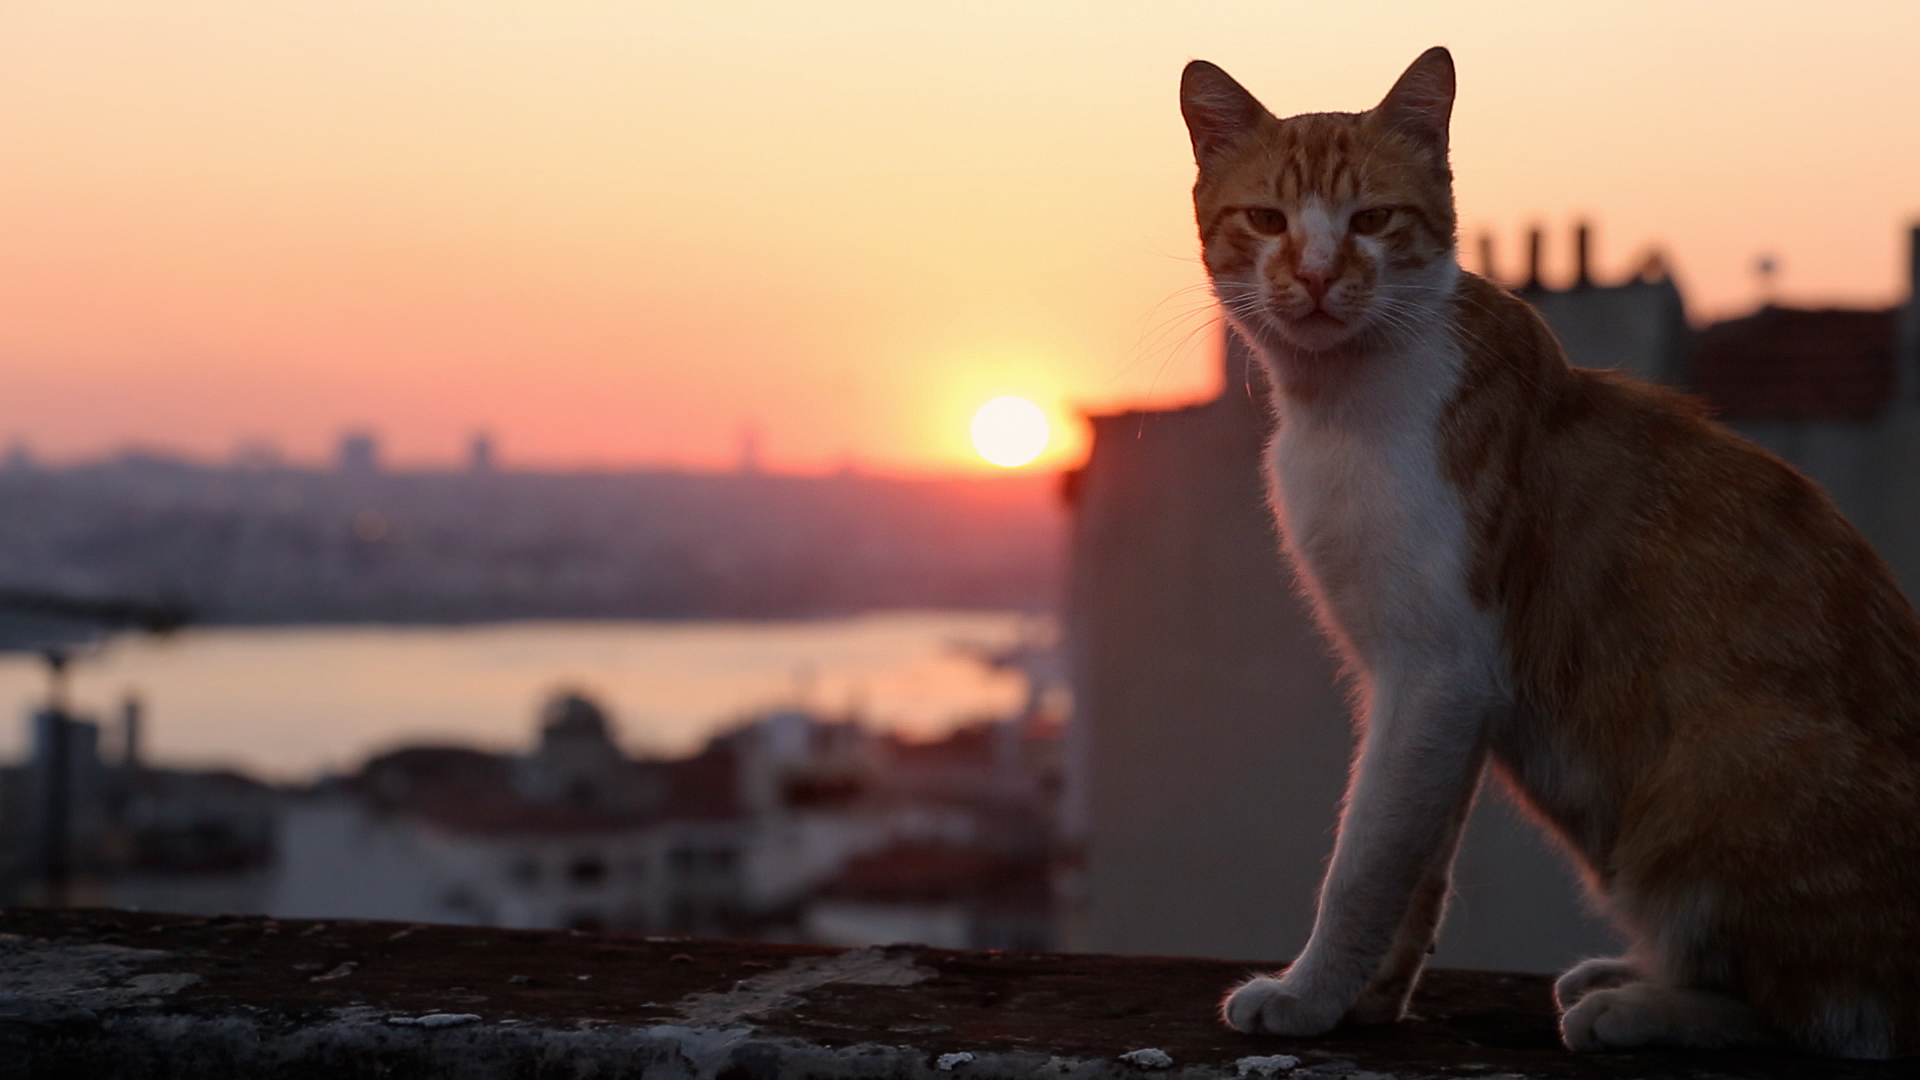 The documentary <i>Kedi</i> screens at the Chicago Athletic Association on December 10.